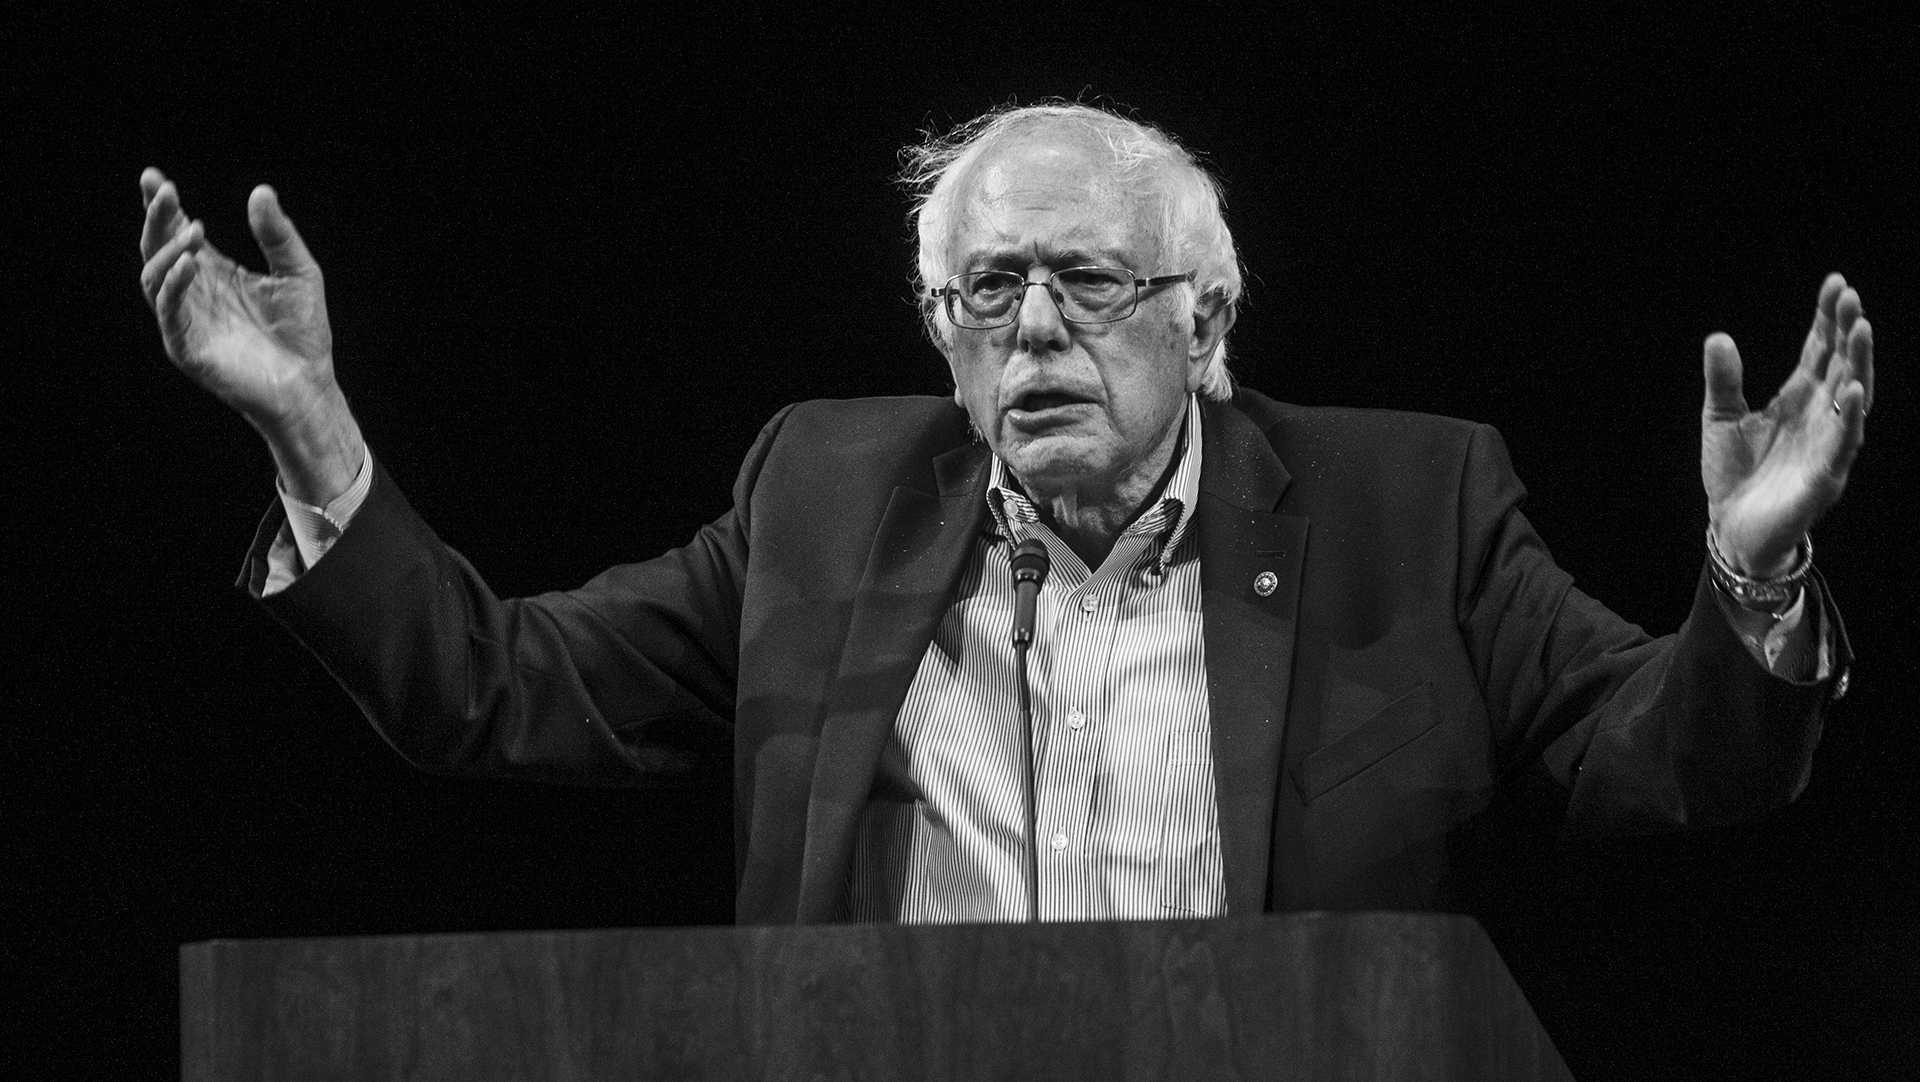 Bernie Sanders speaks at Hancher Auditorium on Thursday August 31, 2017. Sanders spoke at Hancher during a tour to promote the book. (Nick Rohlman/The Daily Iowan)